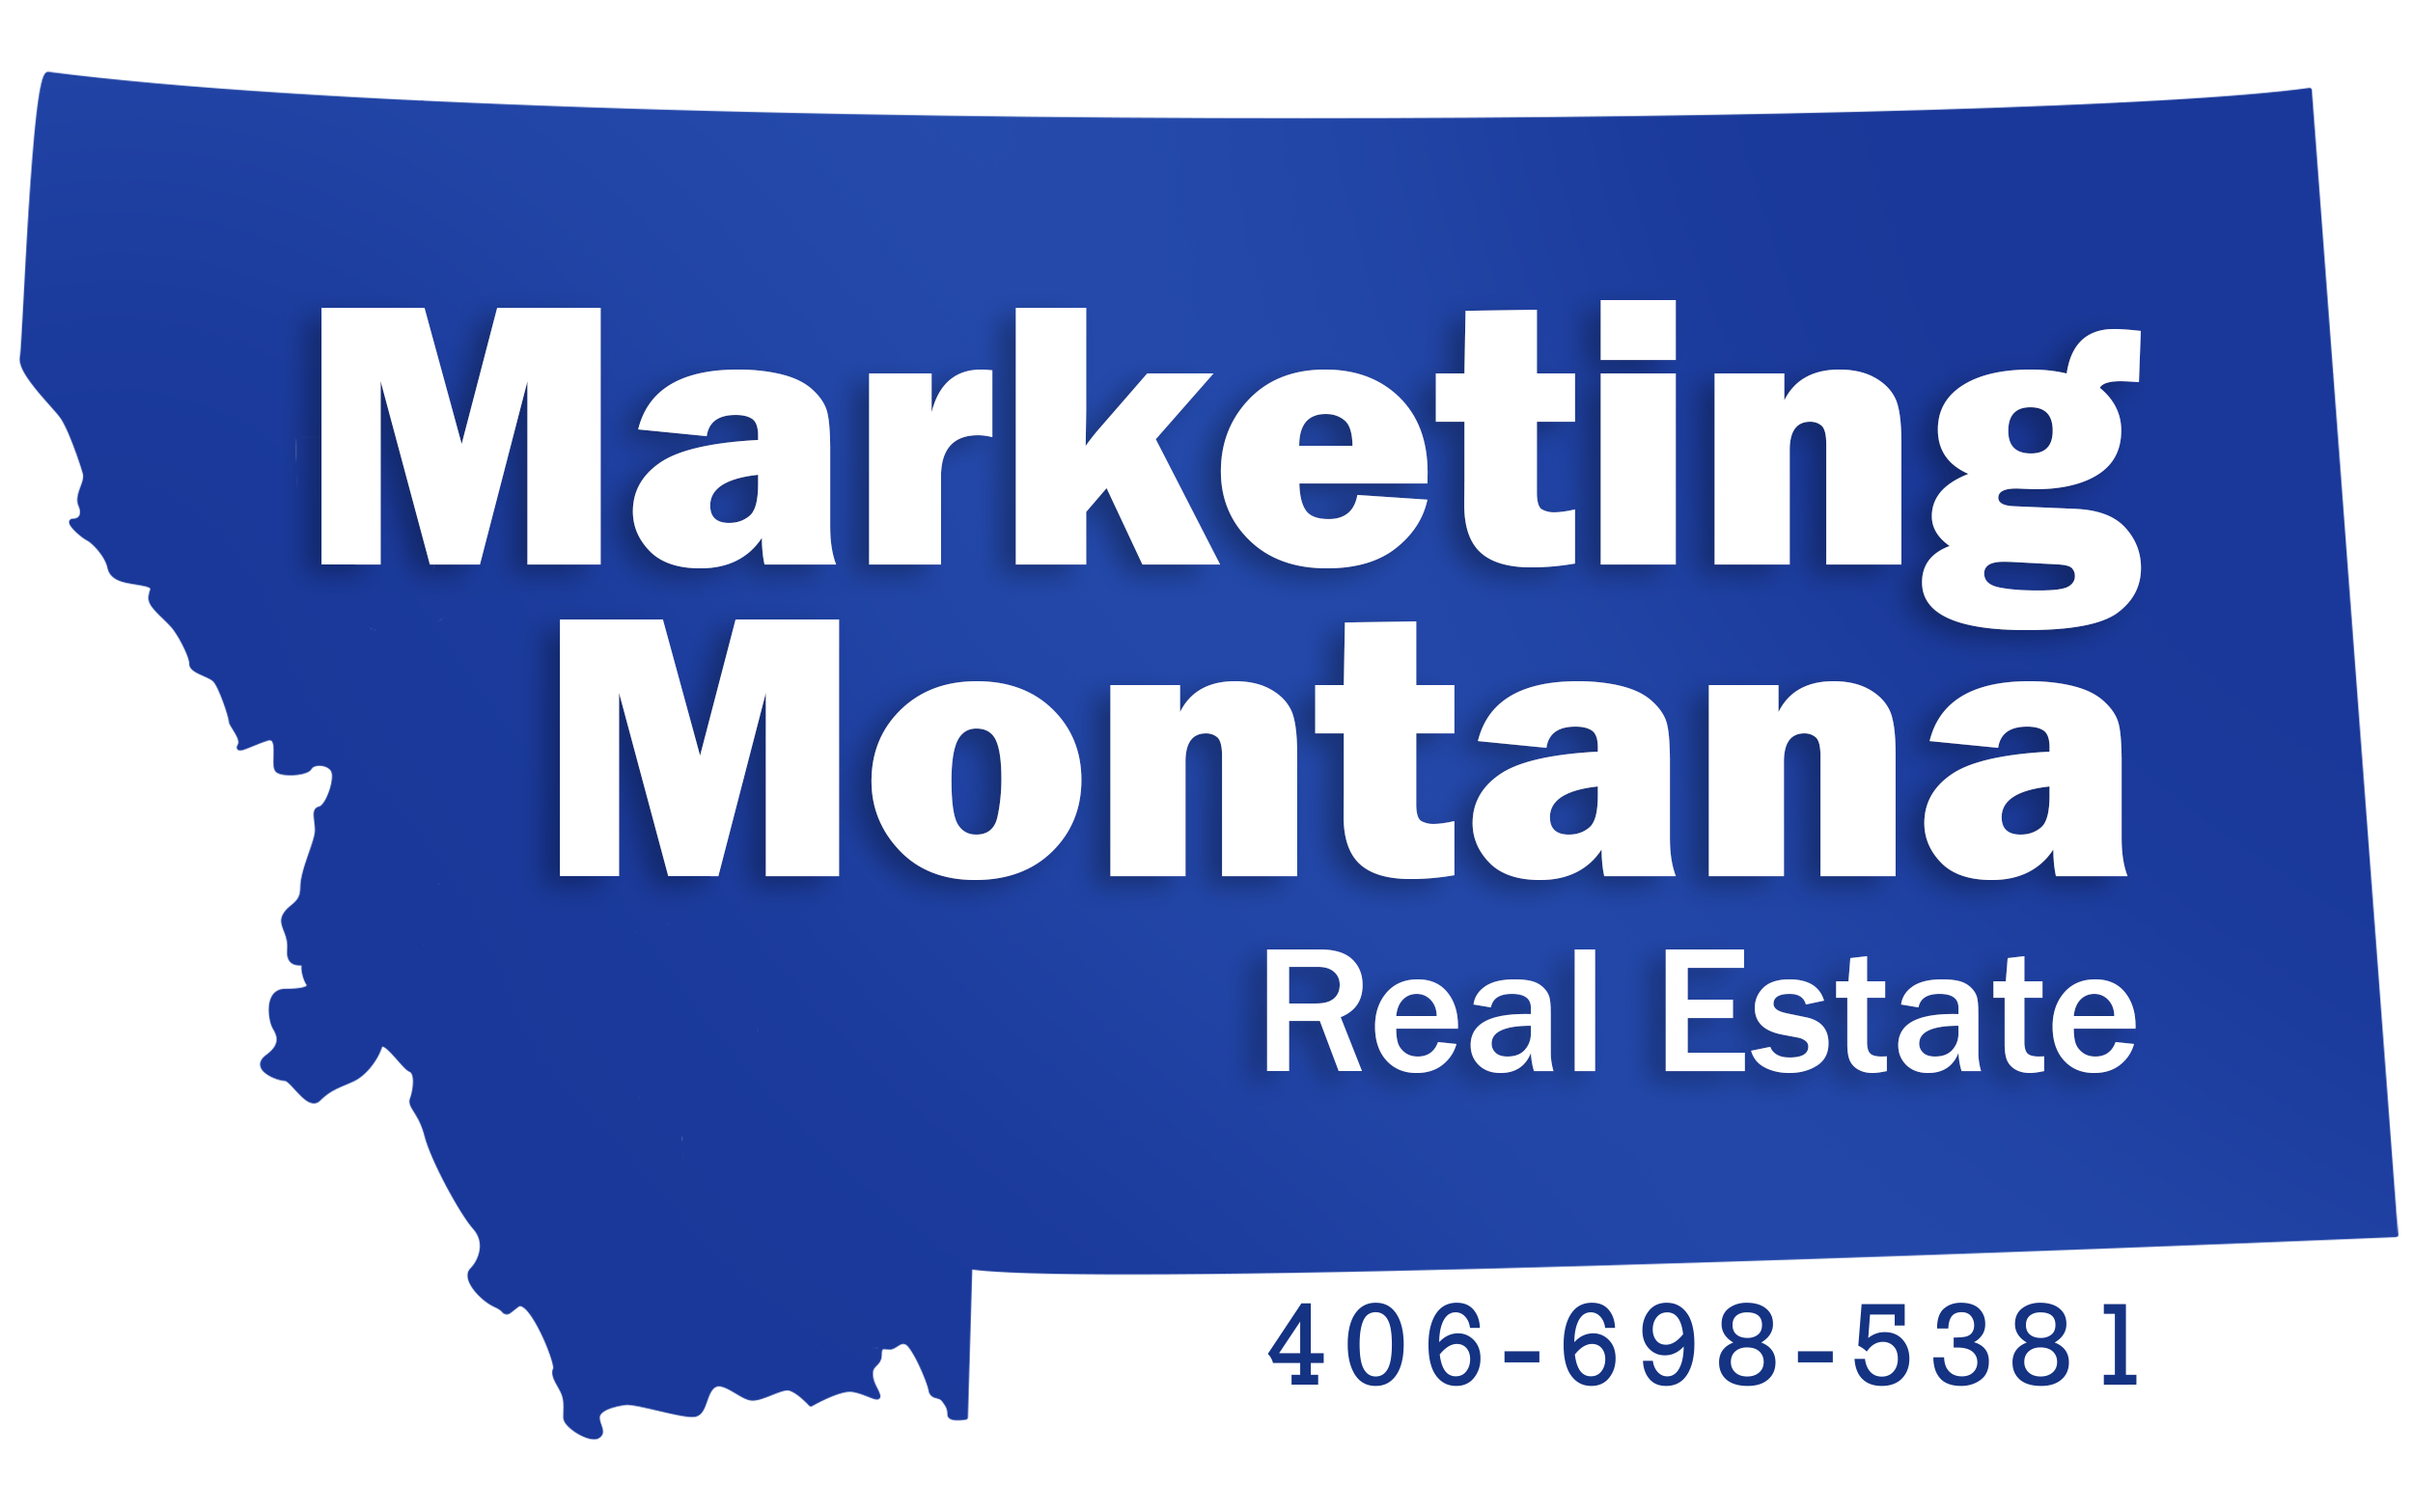 Marketing Montana Real Estate